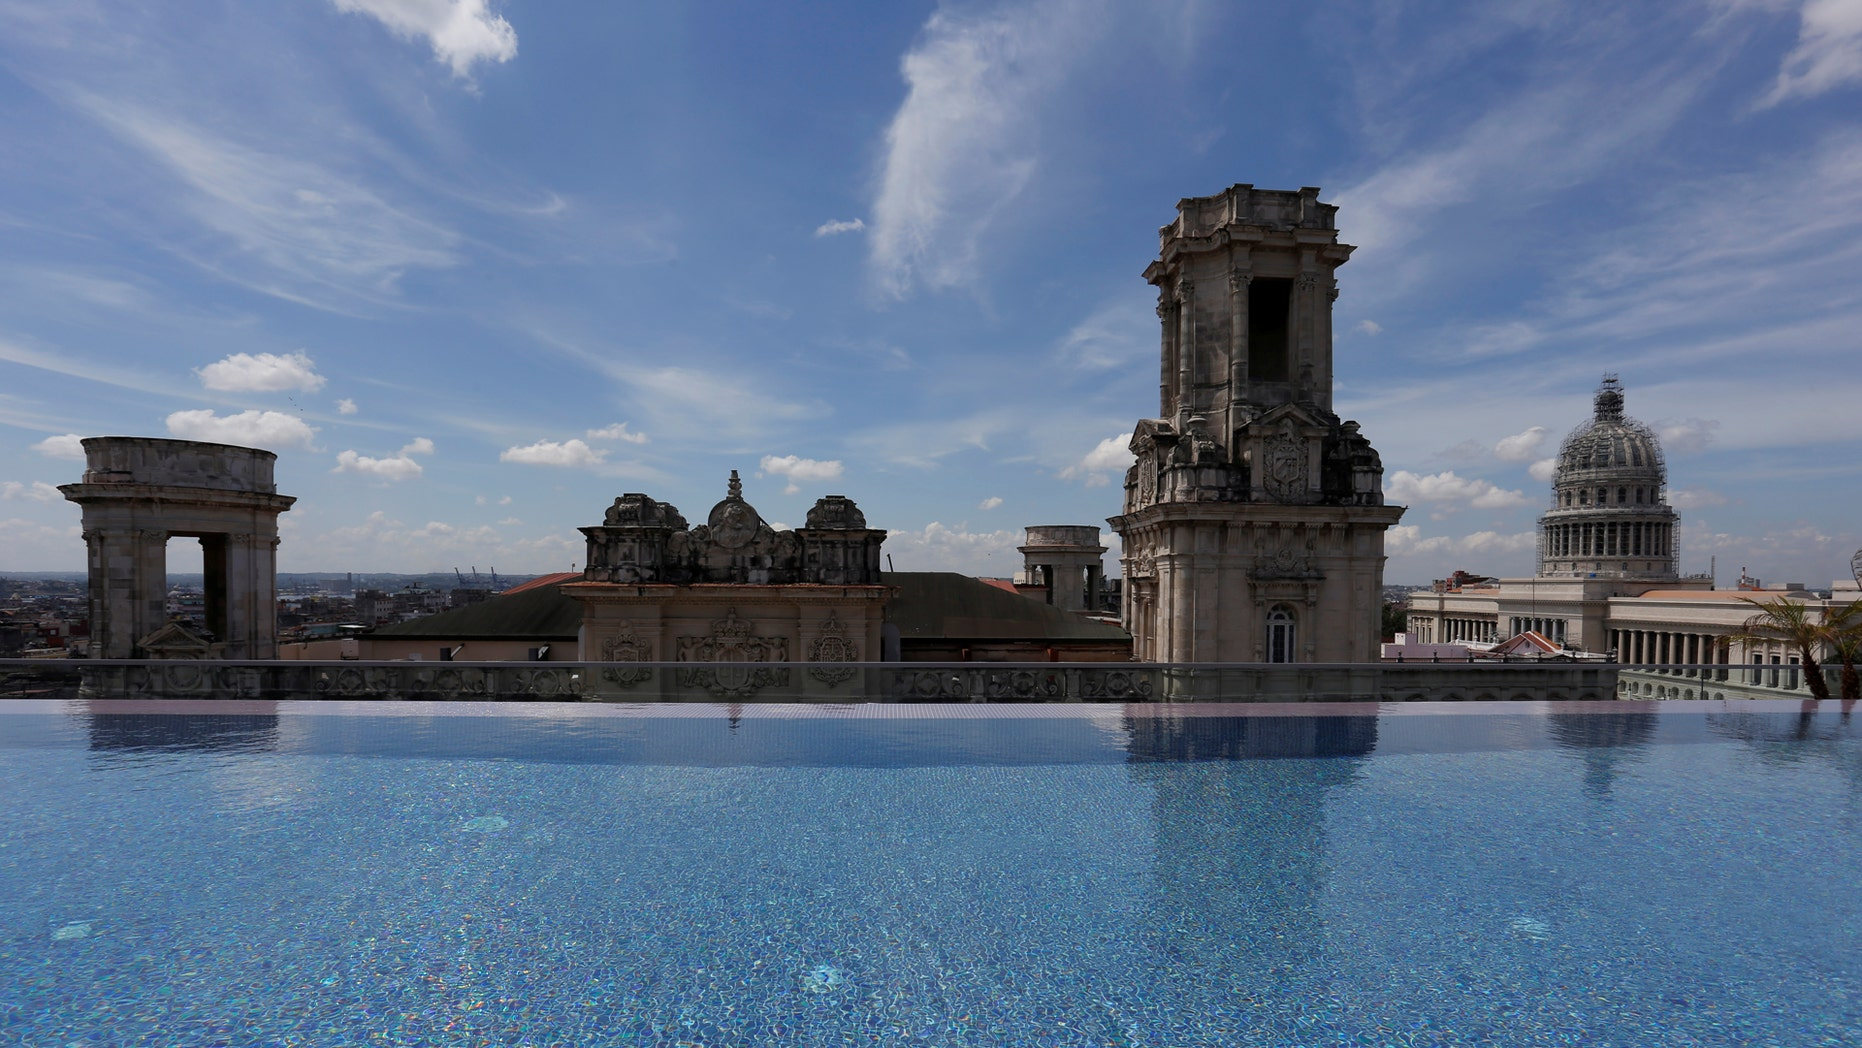 File photo: A historic building is seen from the rooftop infinity pool at the Gran Hotel Manzana, owned by the Cuban government and managed by Swiss-based Kempinski Hotels SA, in Havana, Cuba May 12, 2017. Picture taken May 12, 2017. (REUTERS/Stringer)